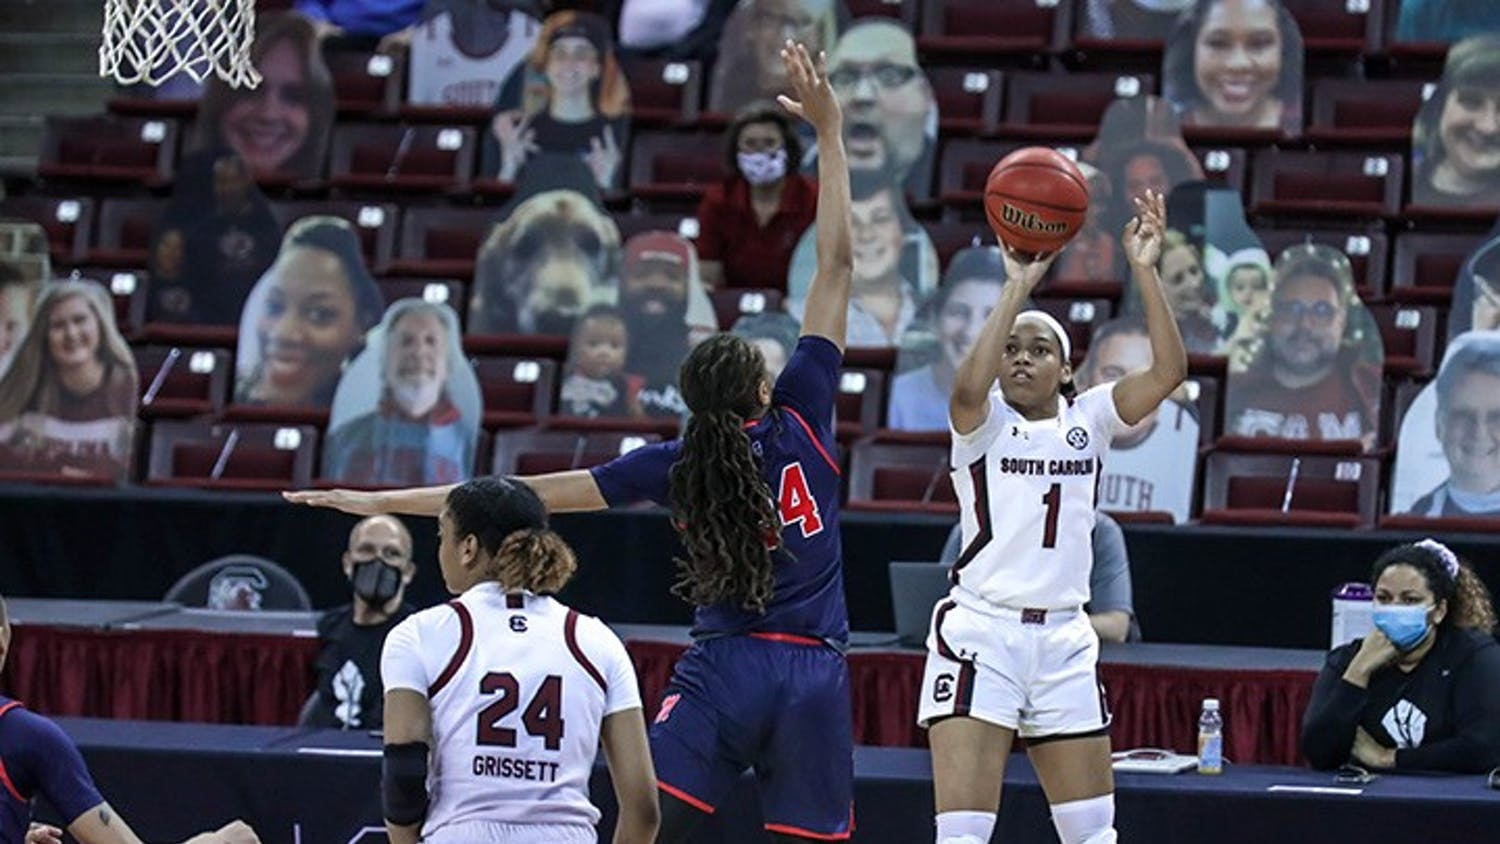 Sophomore guard Zia Cooke shoots the ball during the game against Ole Miss. South Carolina won 68-43.